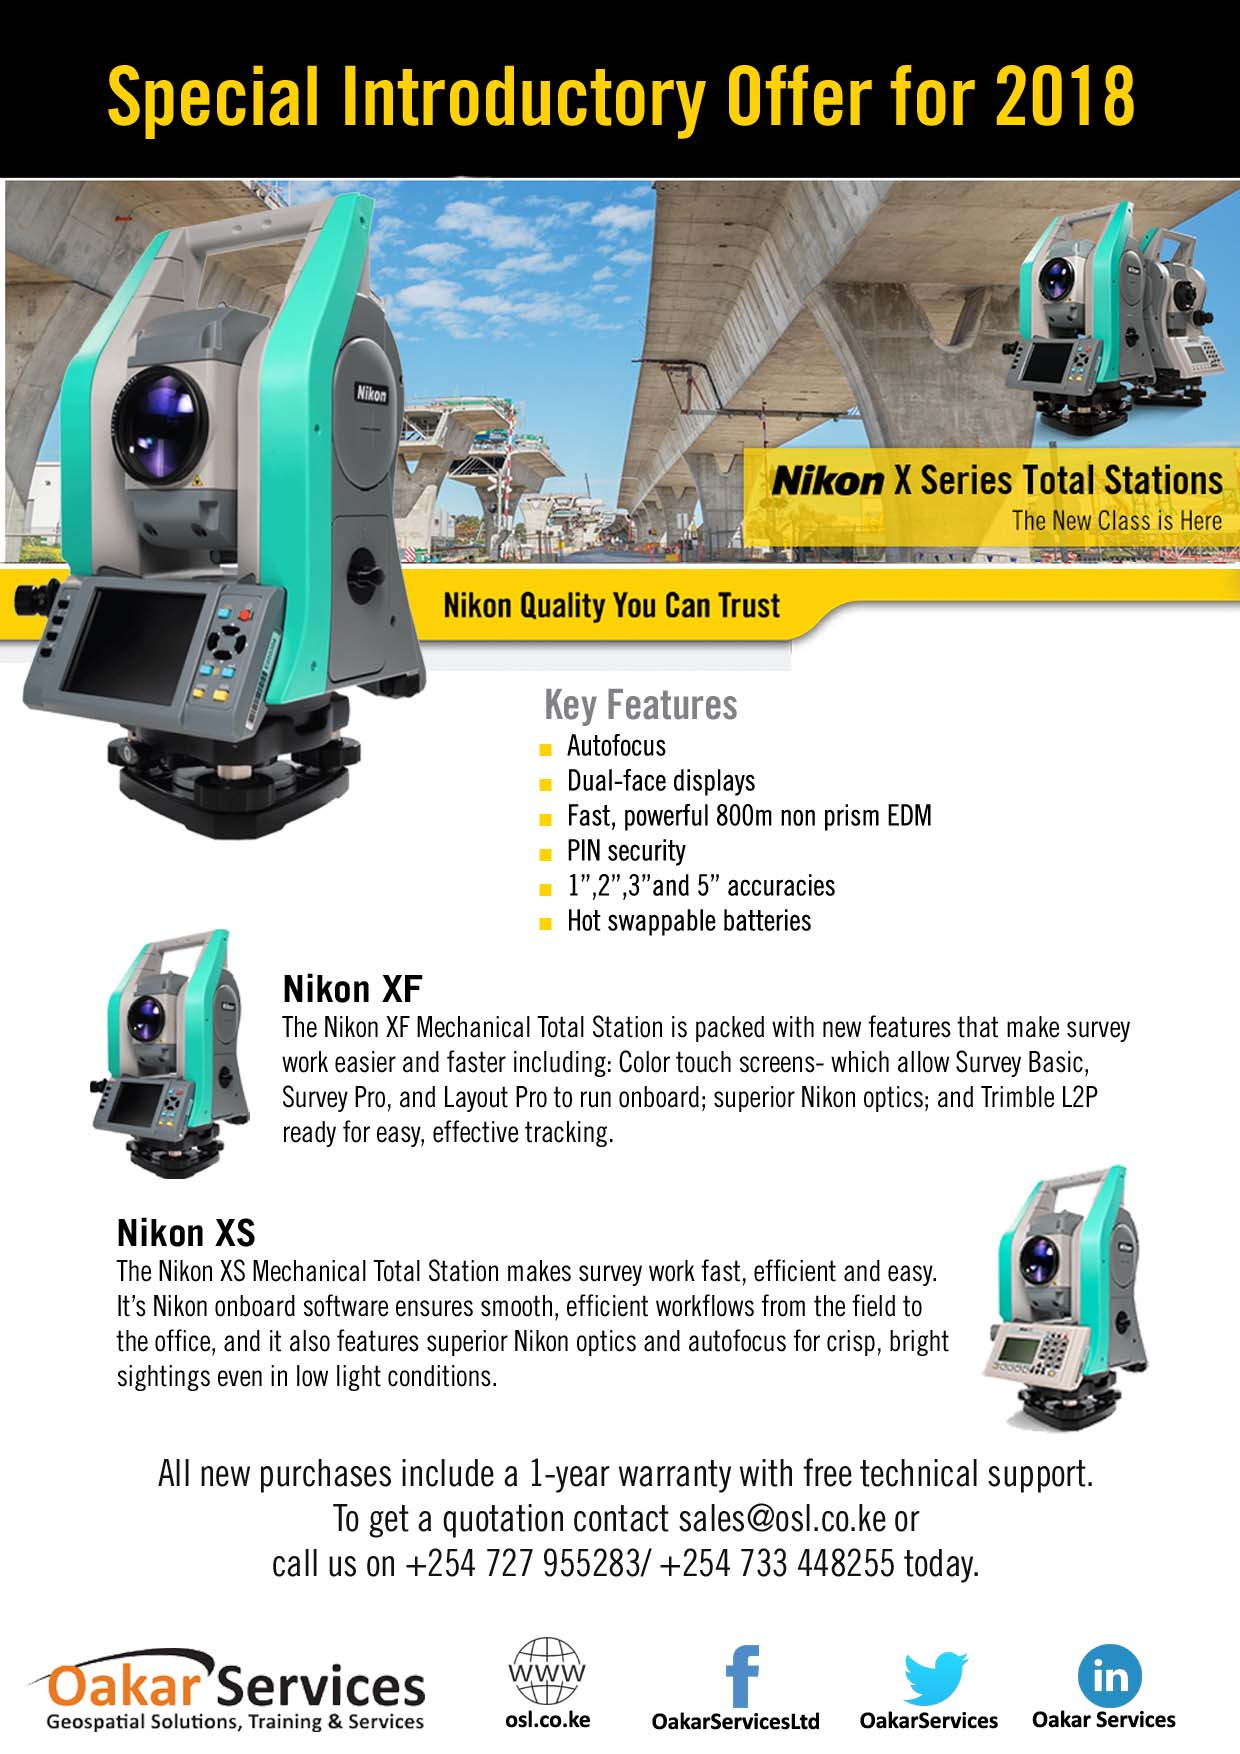 Nikon X Series Total Stations Special Introductory Offer - Oakar